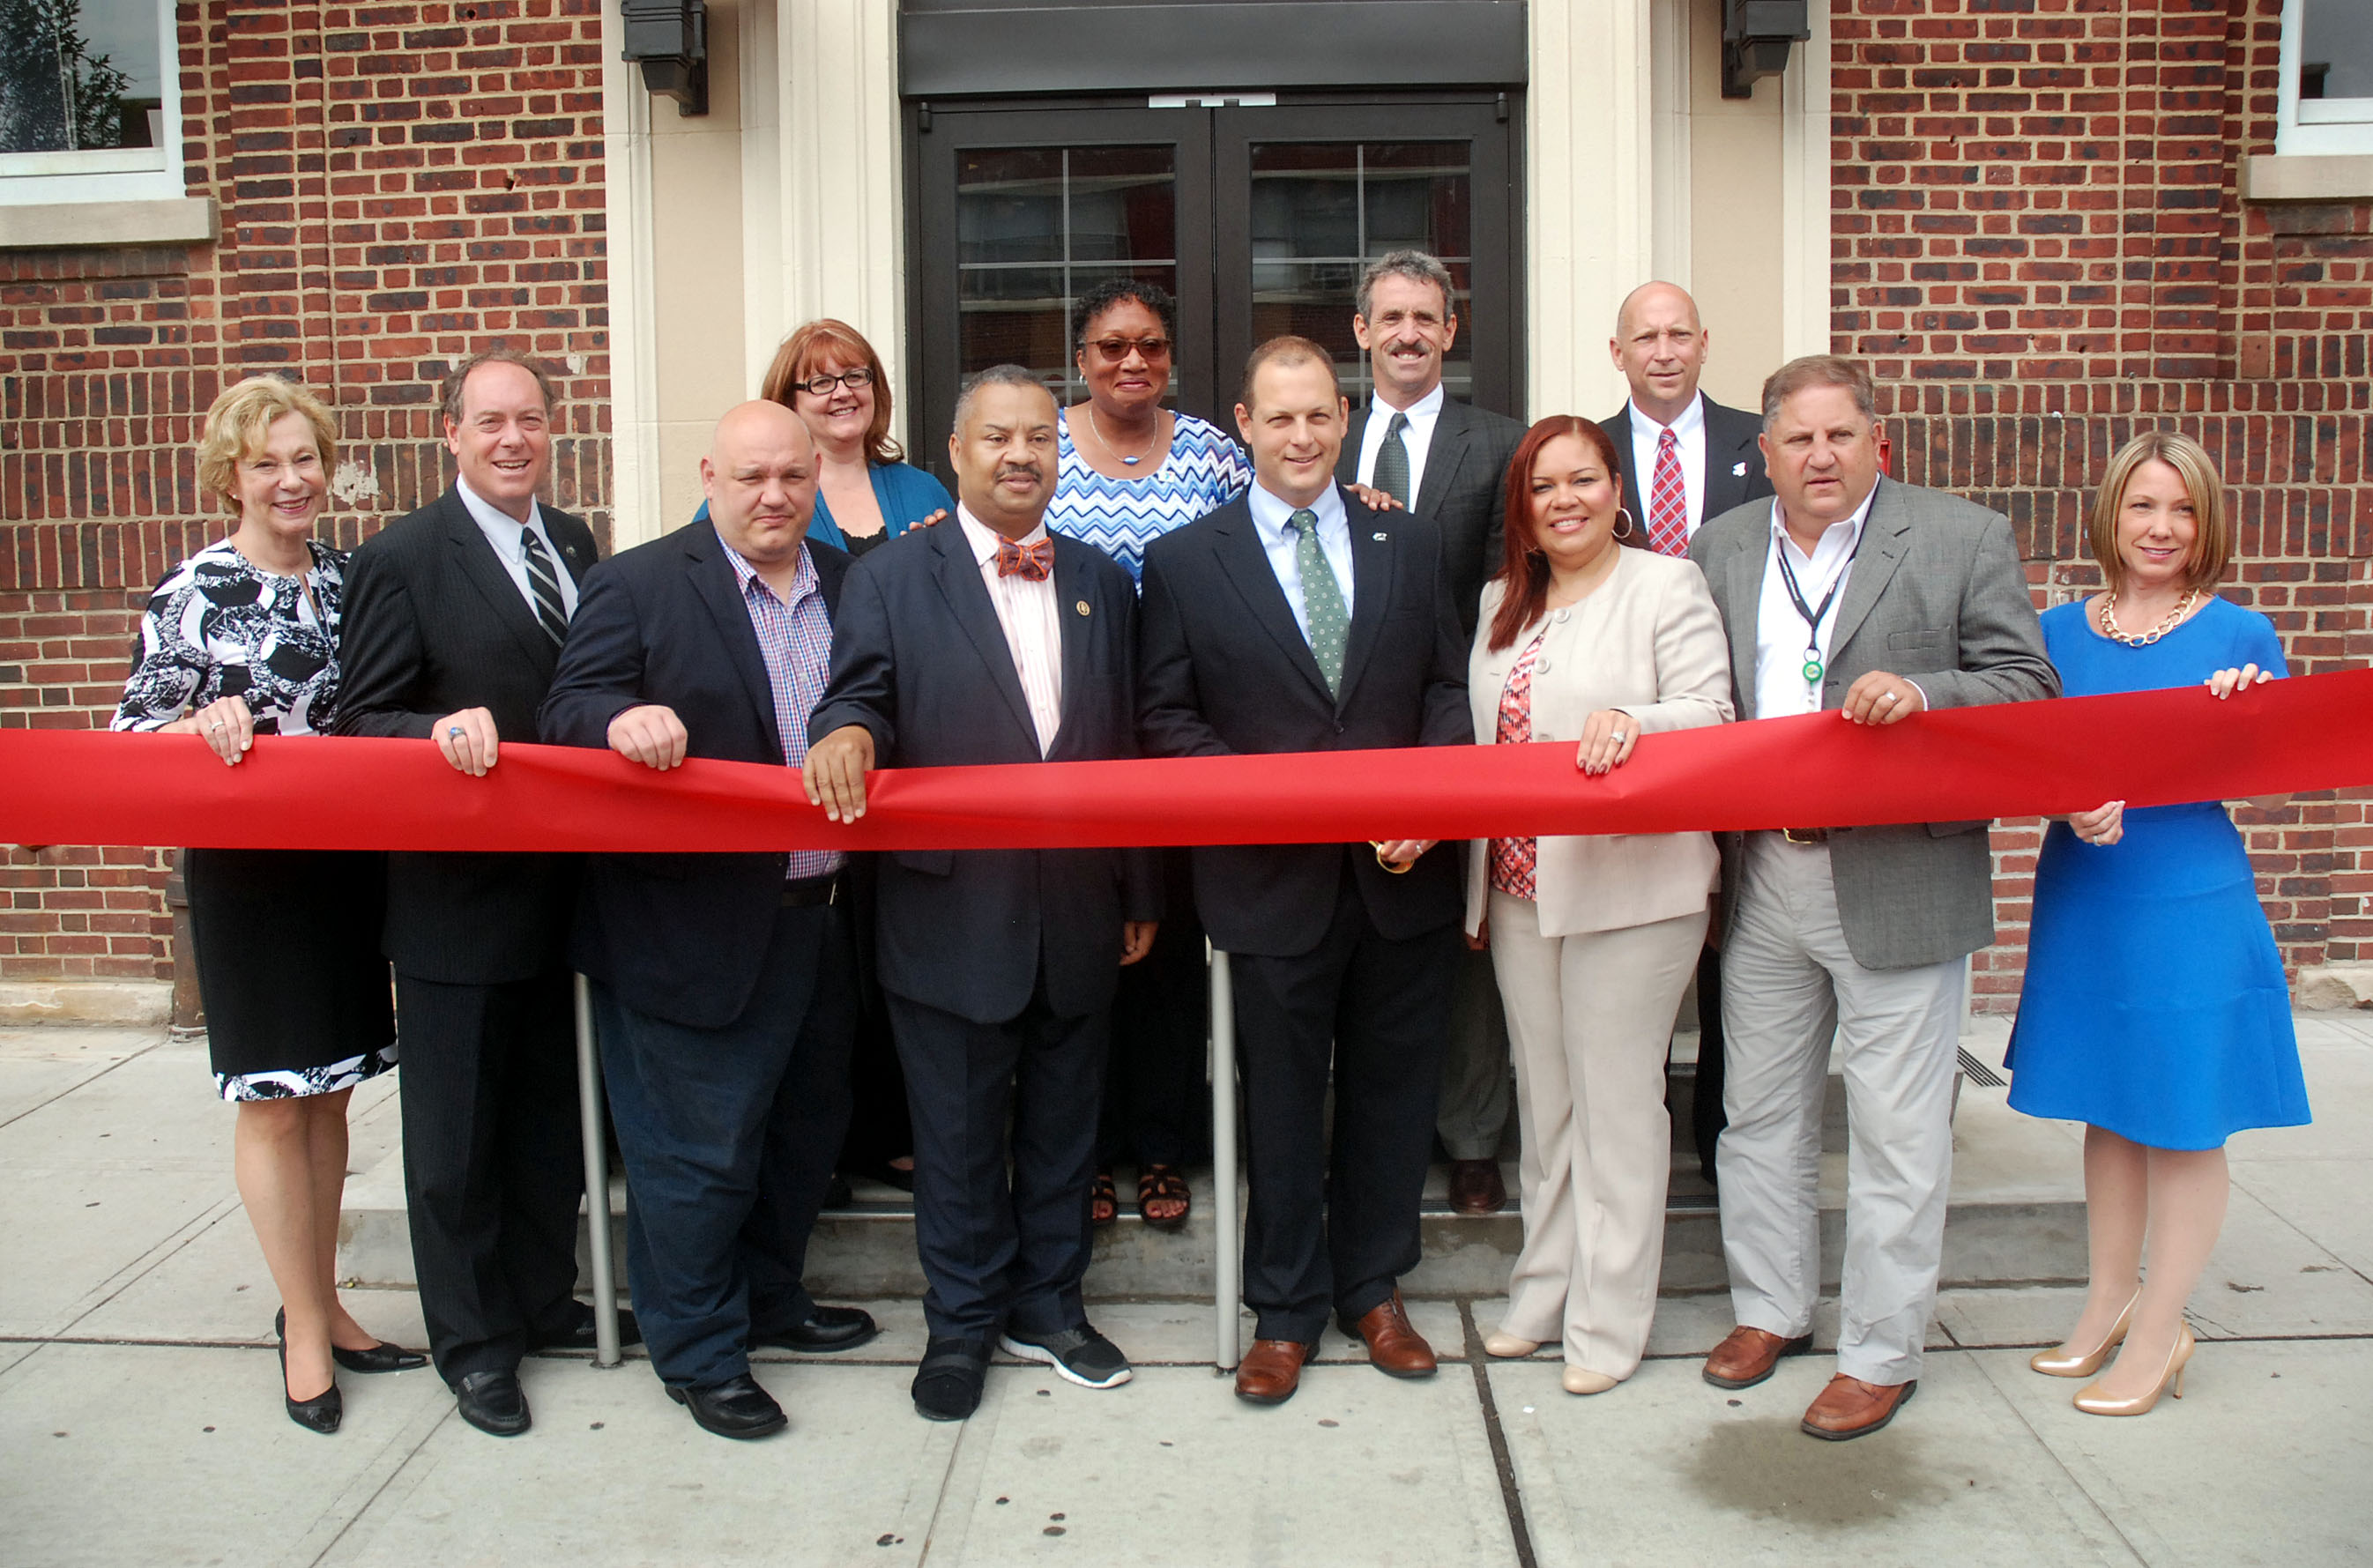 Grand Opening Of The Gateway Family Ymca Rahway Branch County Of Union New Jersey